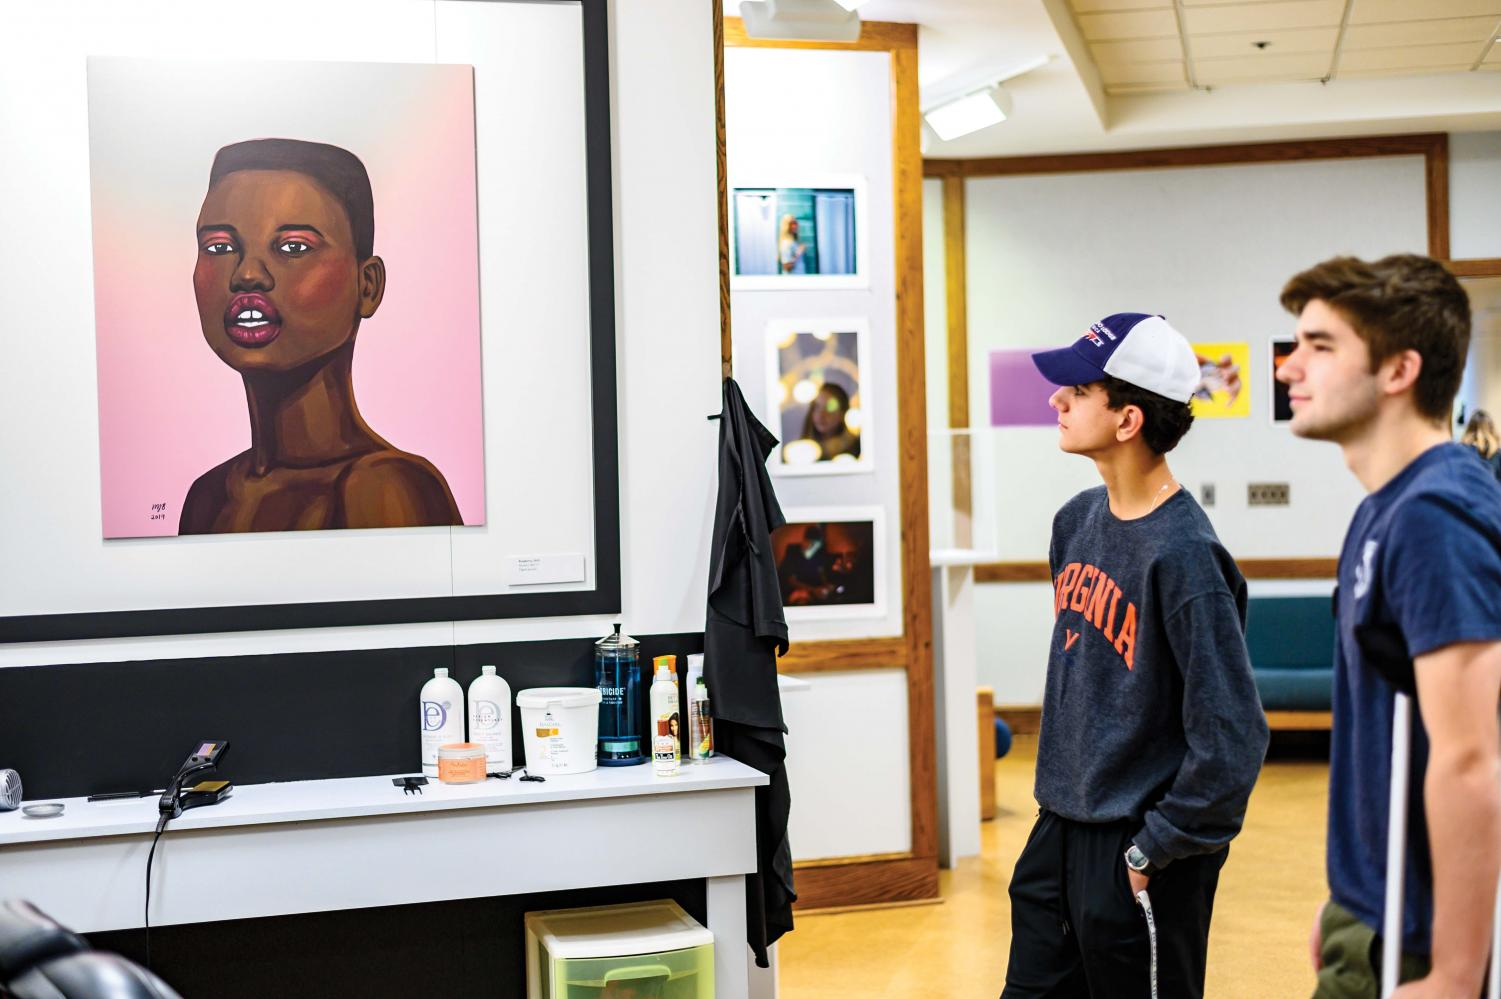 Peter Kallos '22 views Raspberry by Mariah J. Beil '17 in the Black History Month Exhibit.